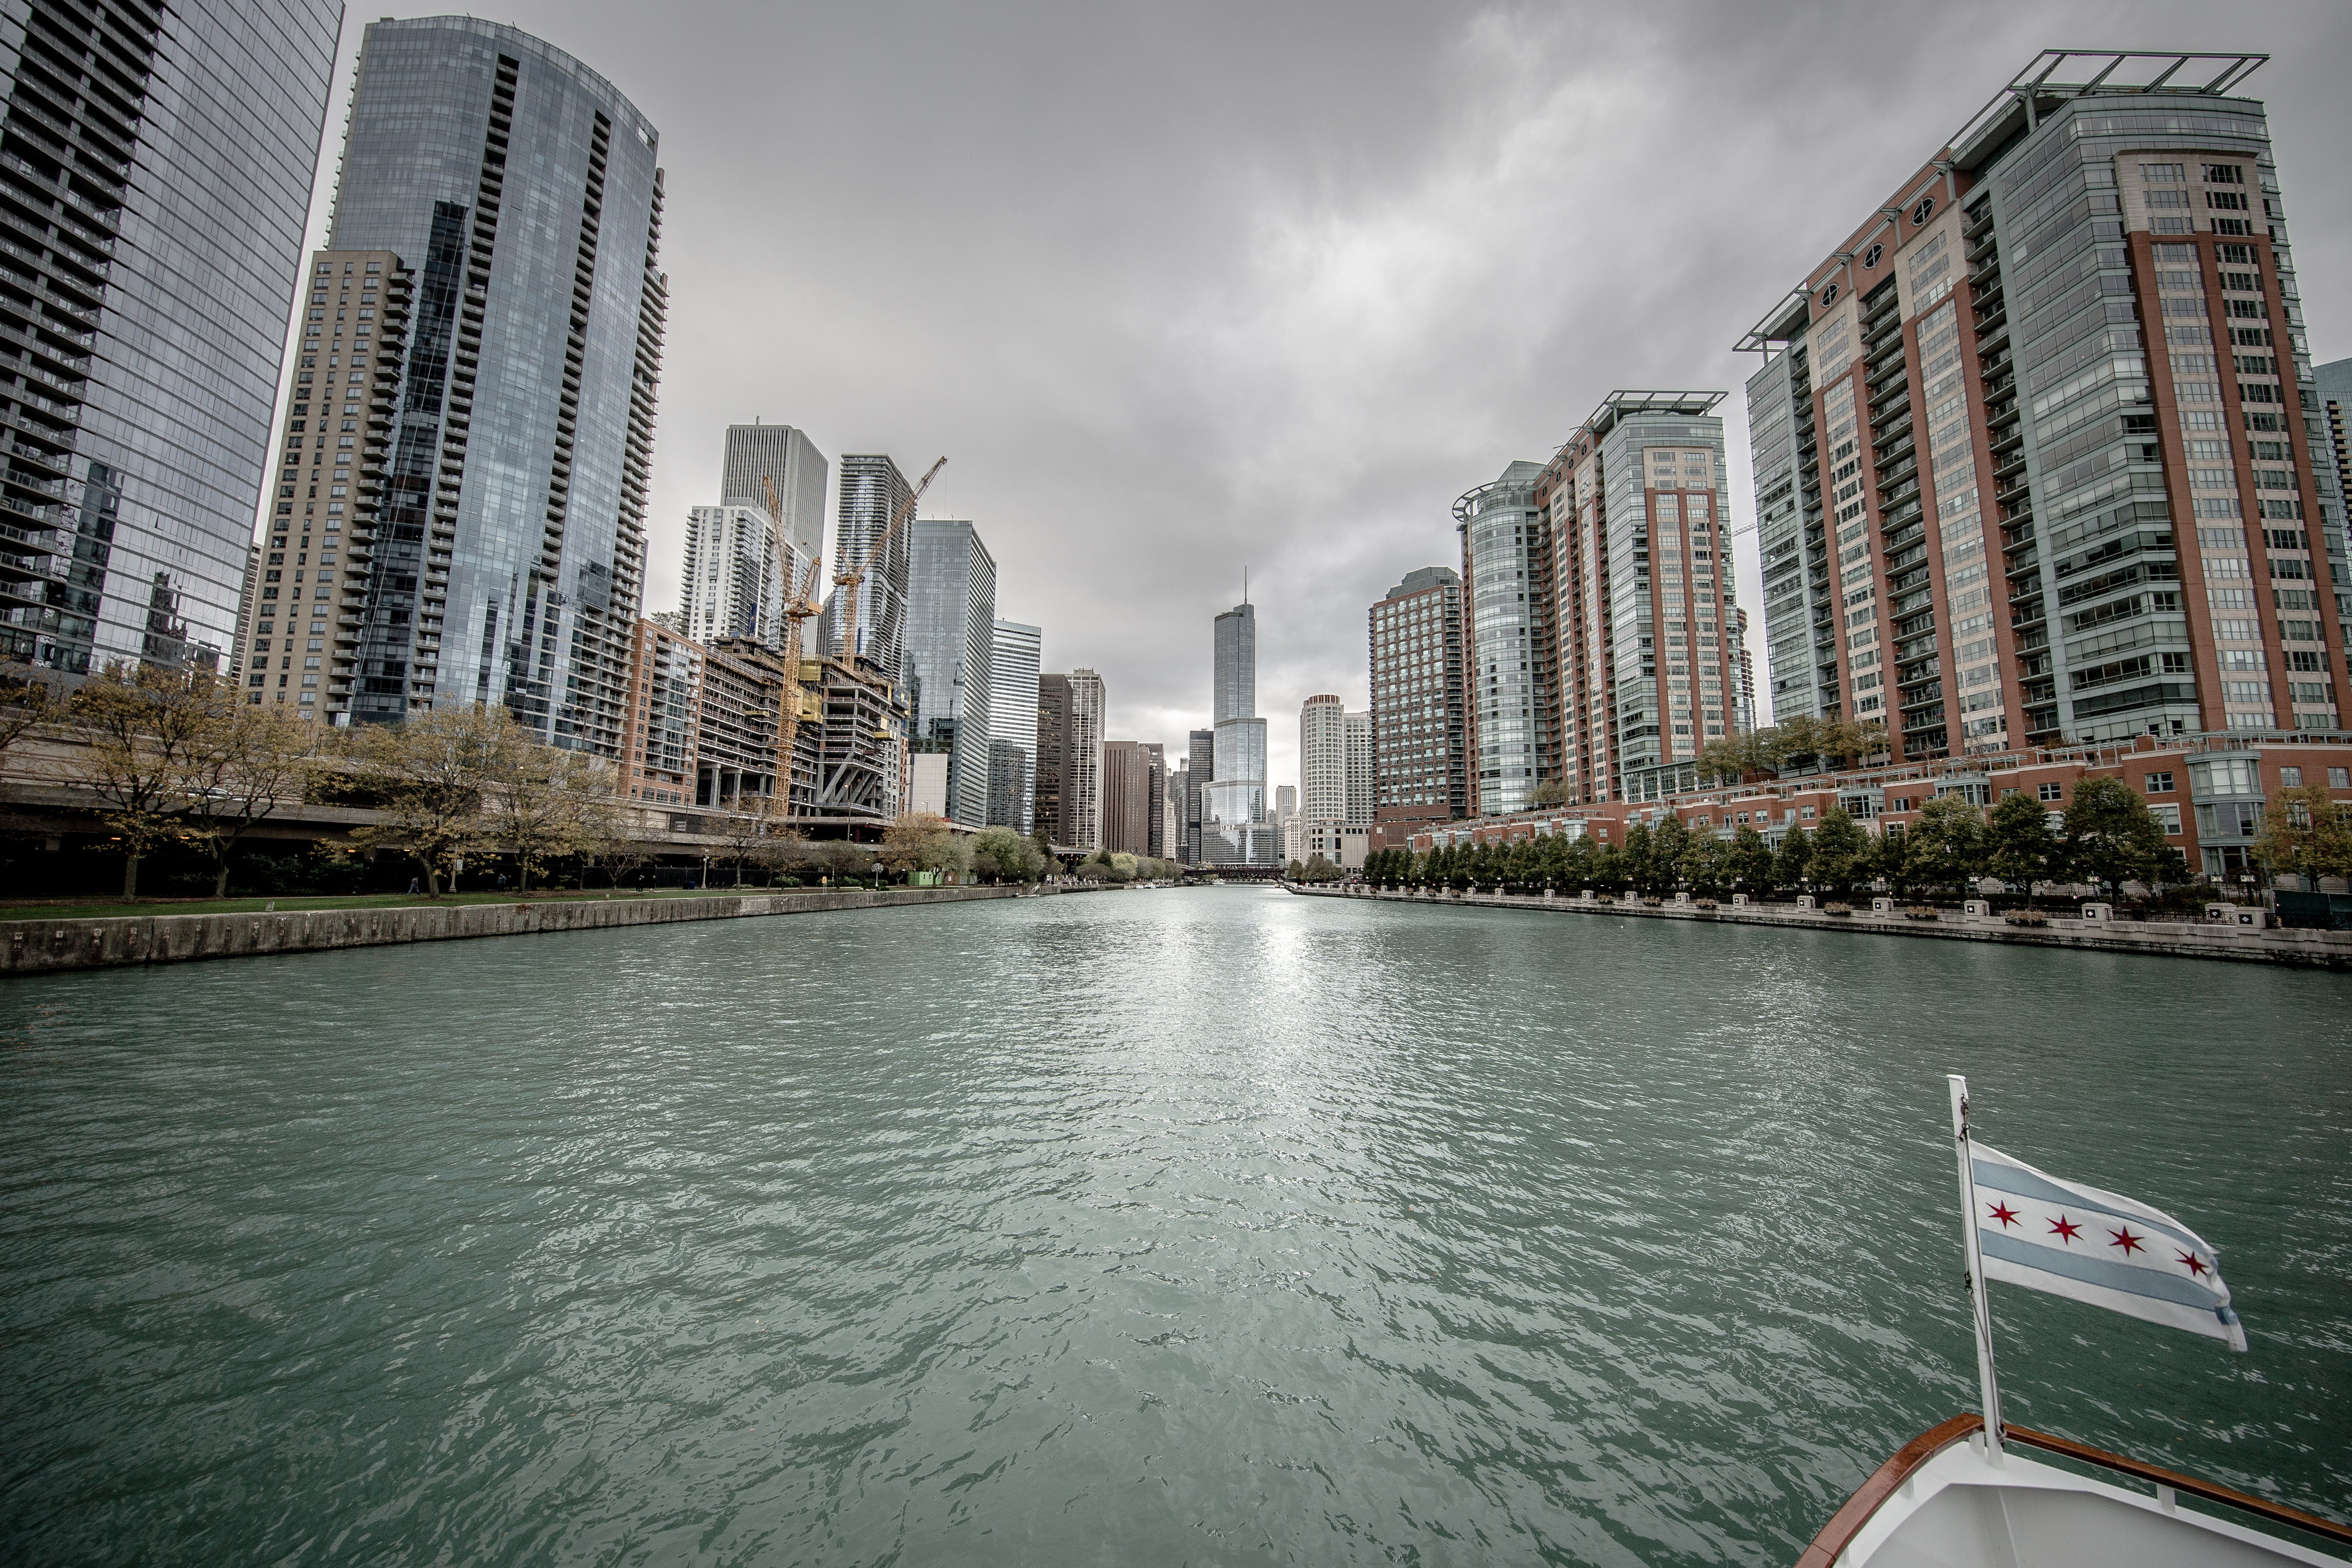 Free stock photo of flags, river, boating, moody